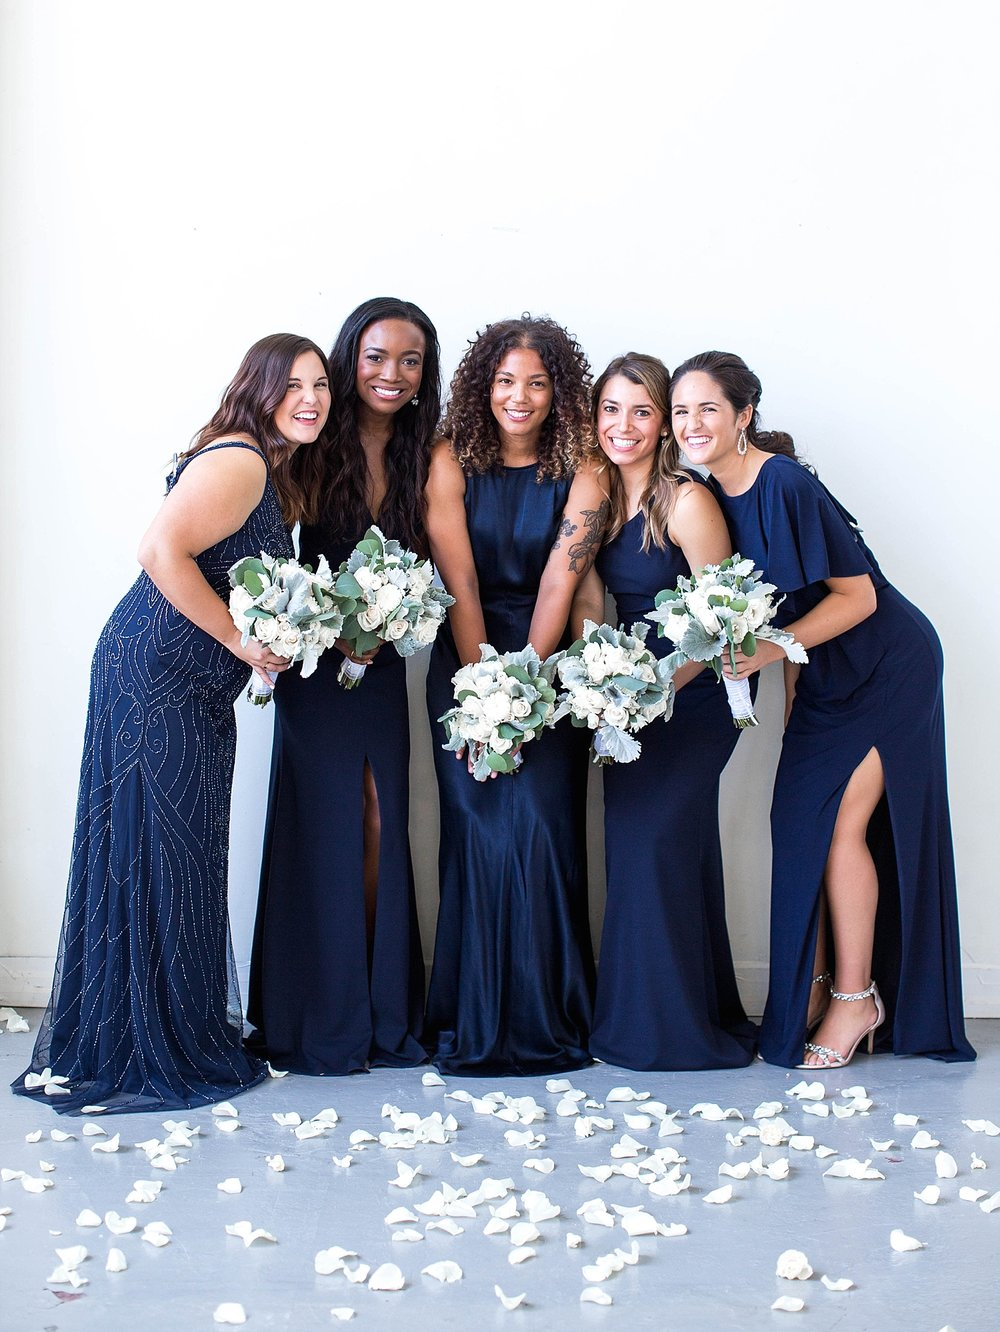 BHLDN Bridesmaids Dresses Campaign Philadelphia New Jersey Wedding Fashion Photography by Kelee Bovelle_0020.jpg